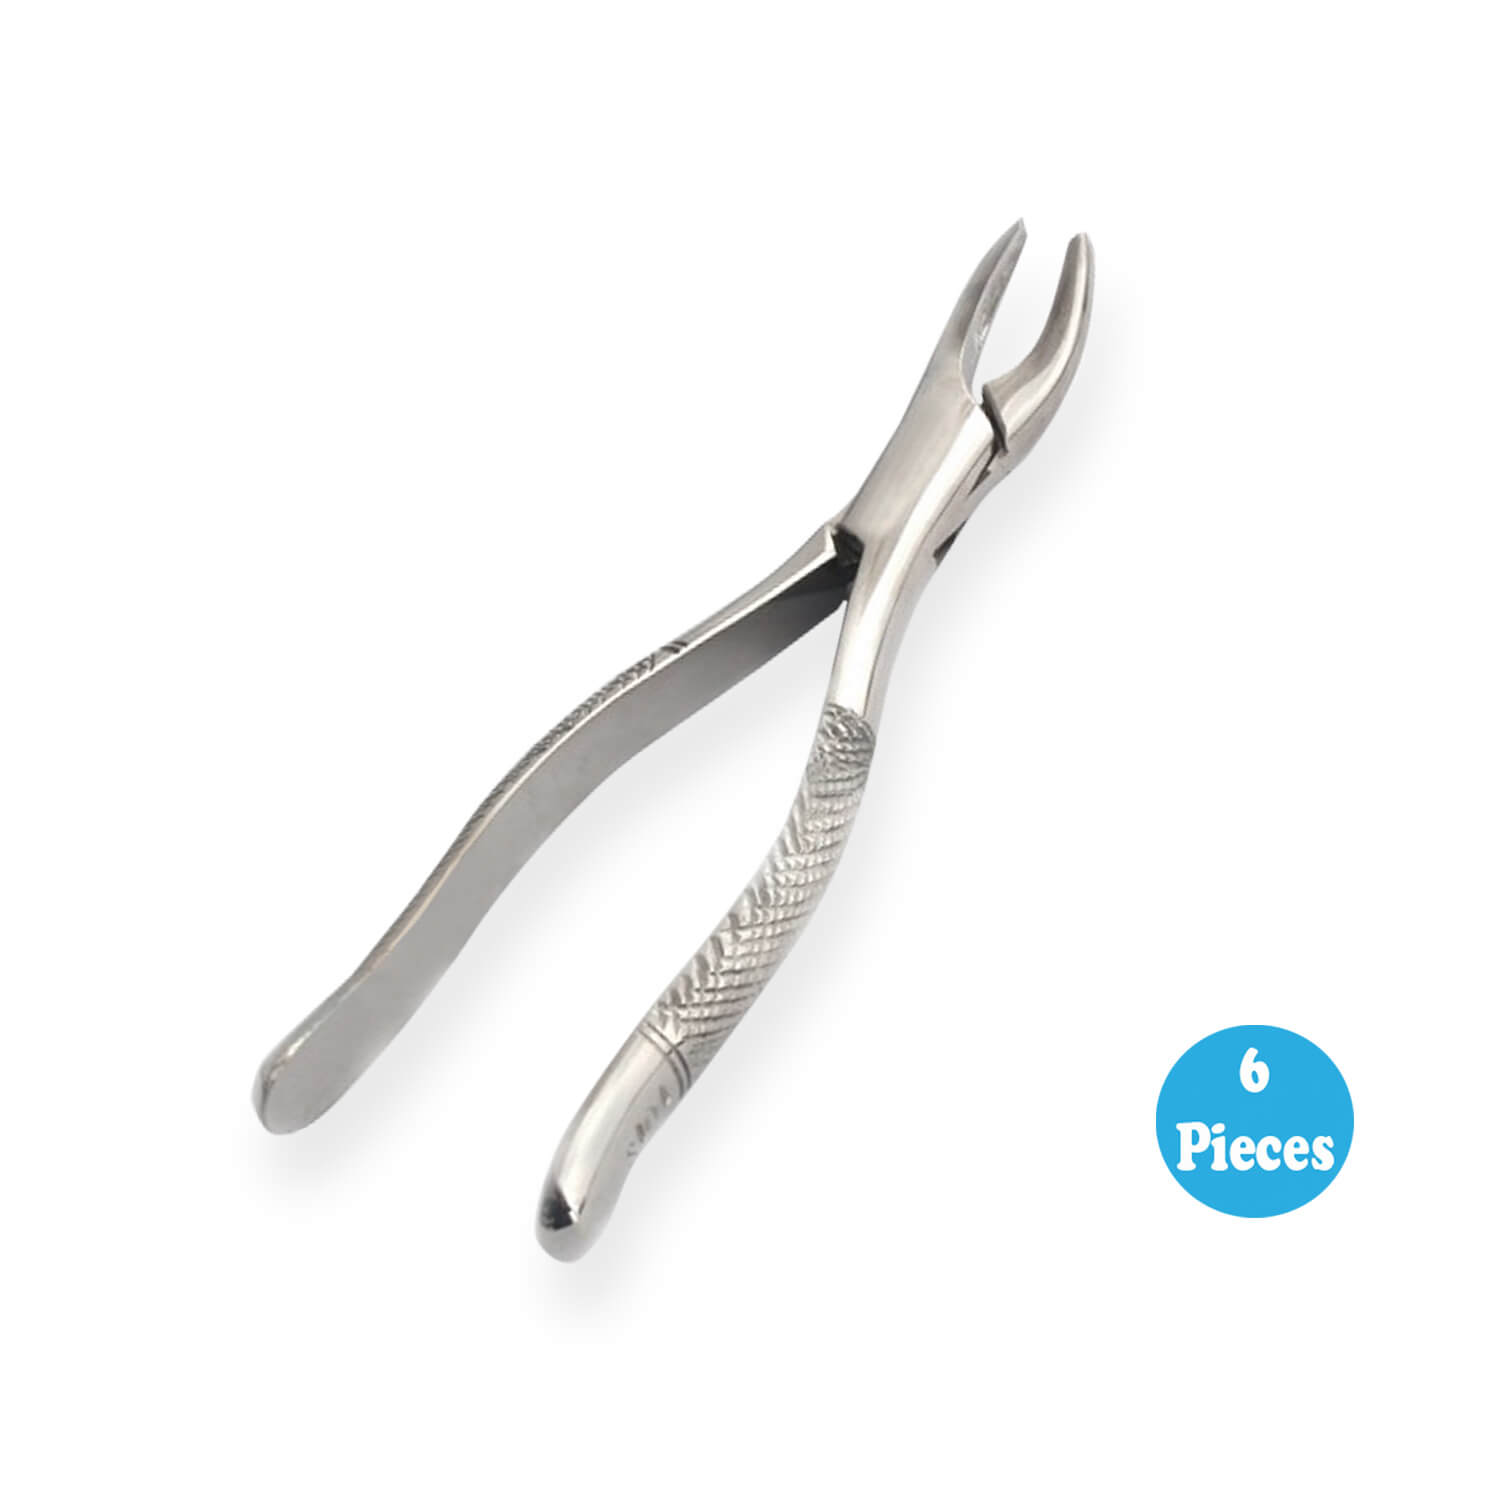 6 Extracting forceps Dental Surgical #101S